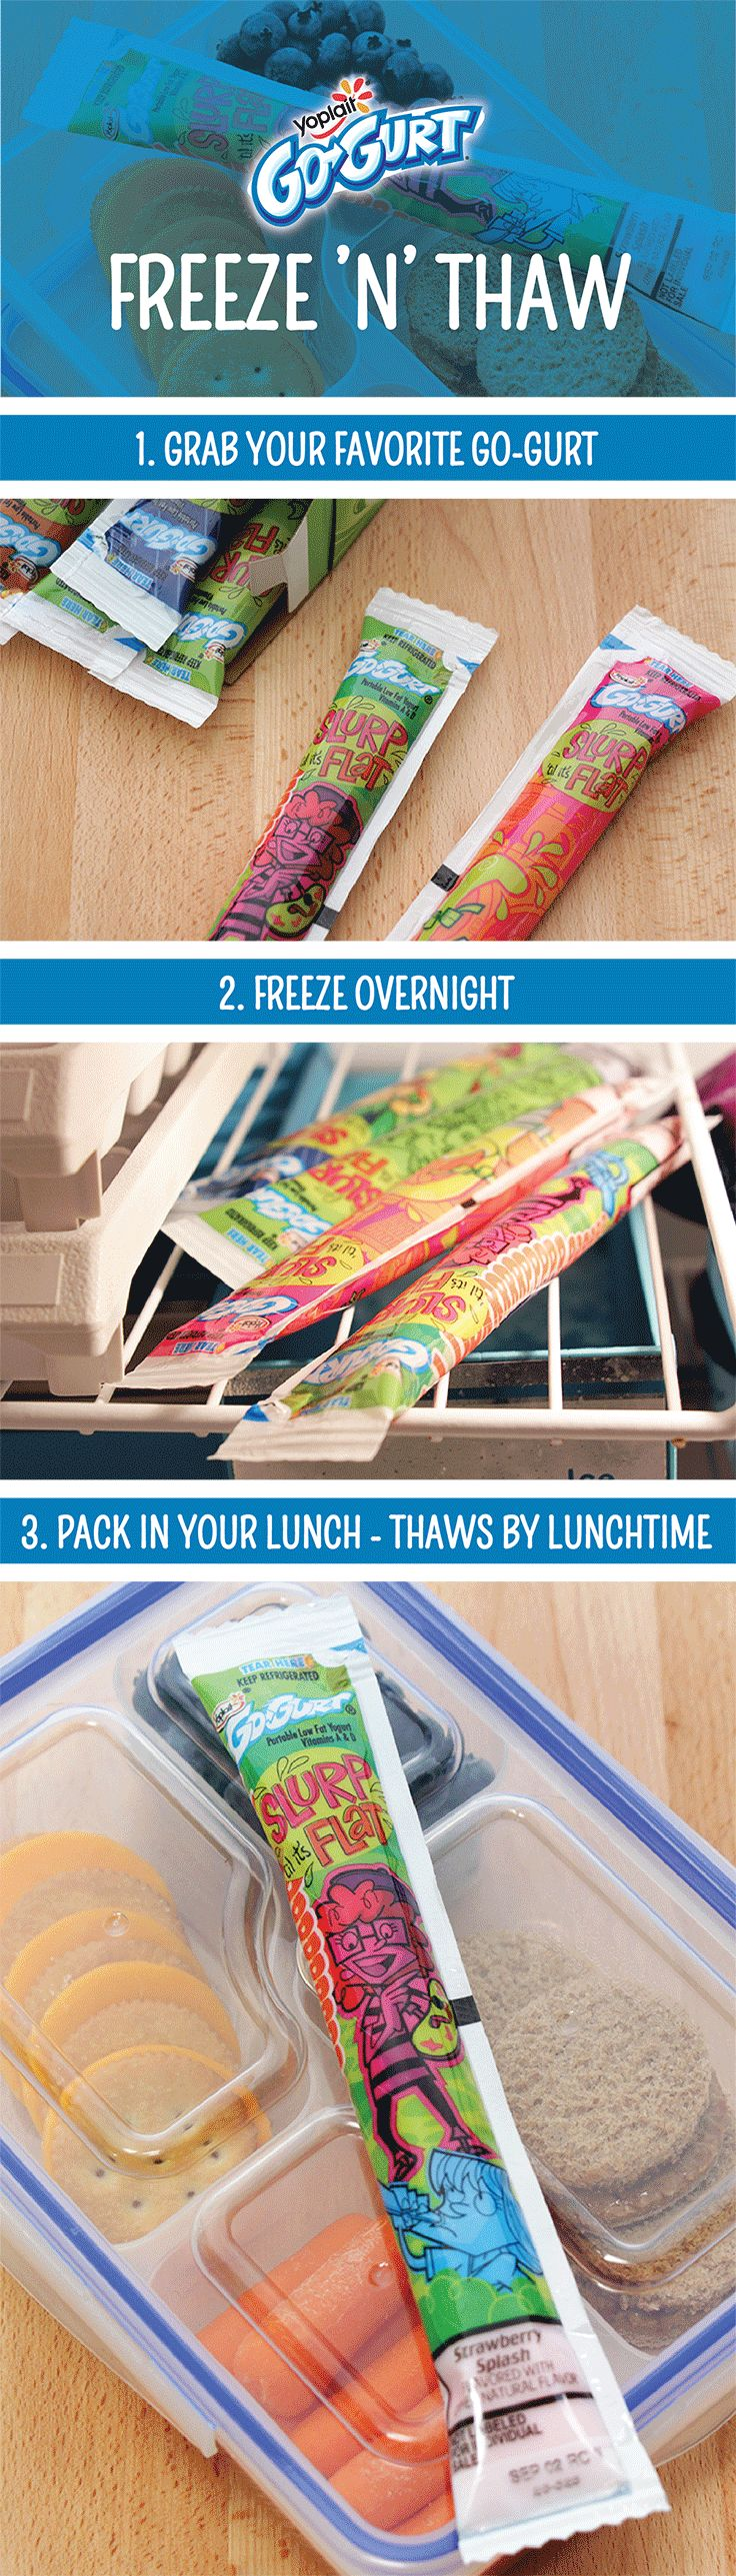 Did you know Yoplait Go-GURT® is specially made to Freeze and Thaw by lunchtime? Throw in the freezer the night before, and toss into the lunch box in the morning. It can also help keep your kid's lunch cool too!